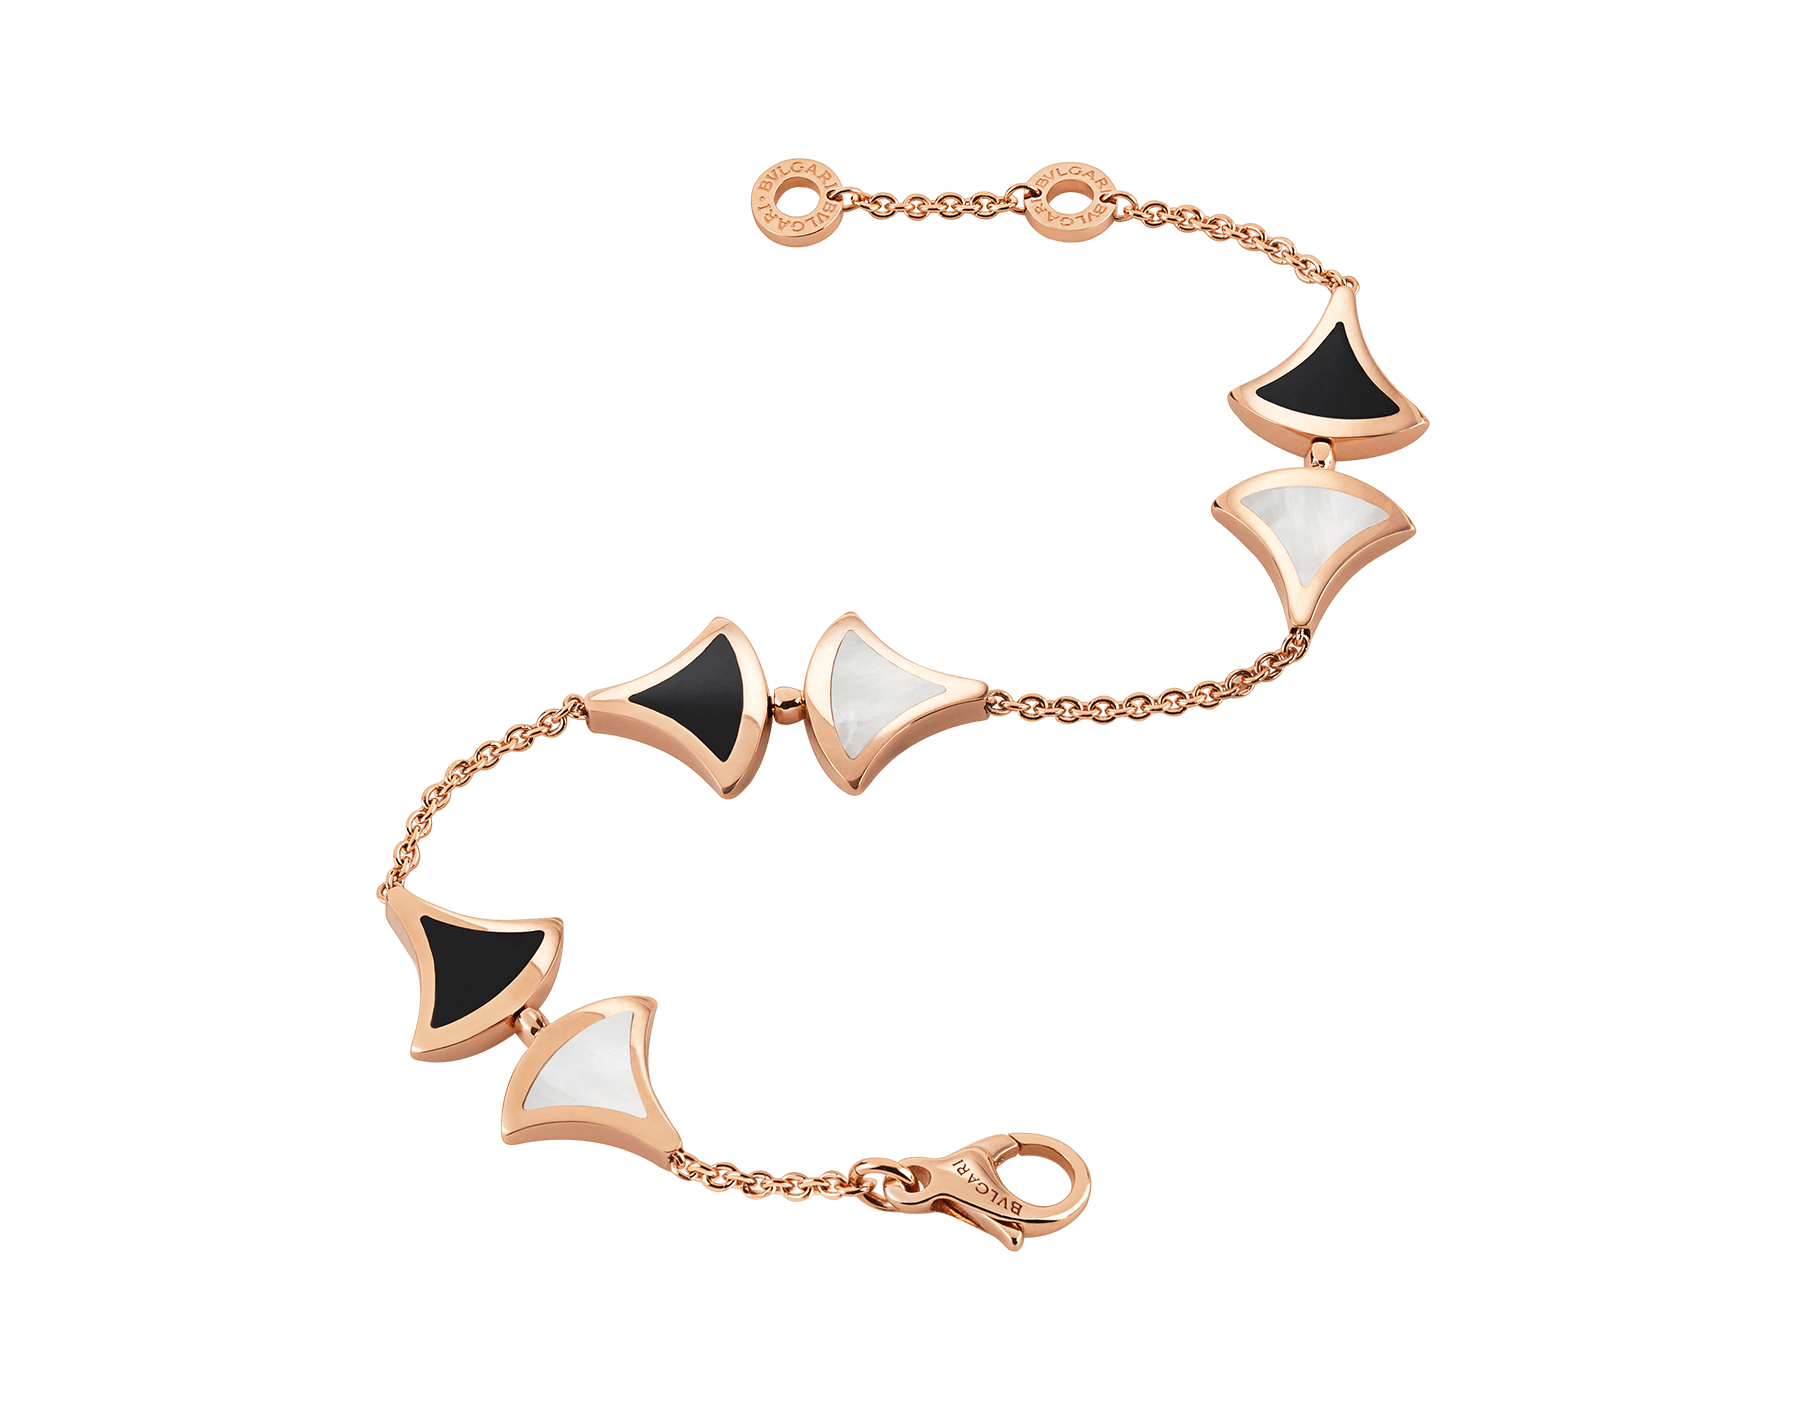 DIVAS' DREAM bracelet in 18 kt rose gold with mother-of-pearl and onyx elements. BR856995 image 2